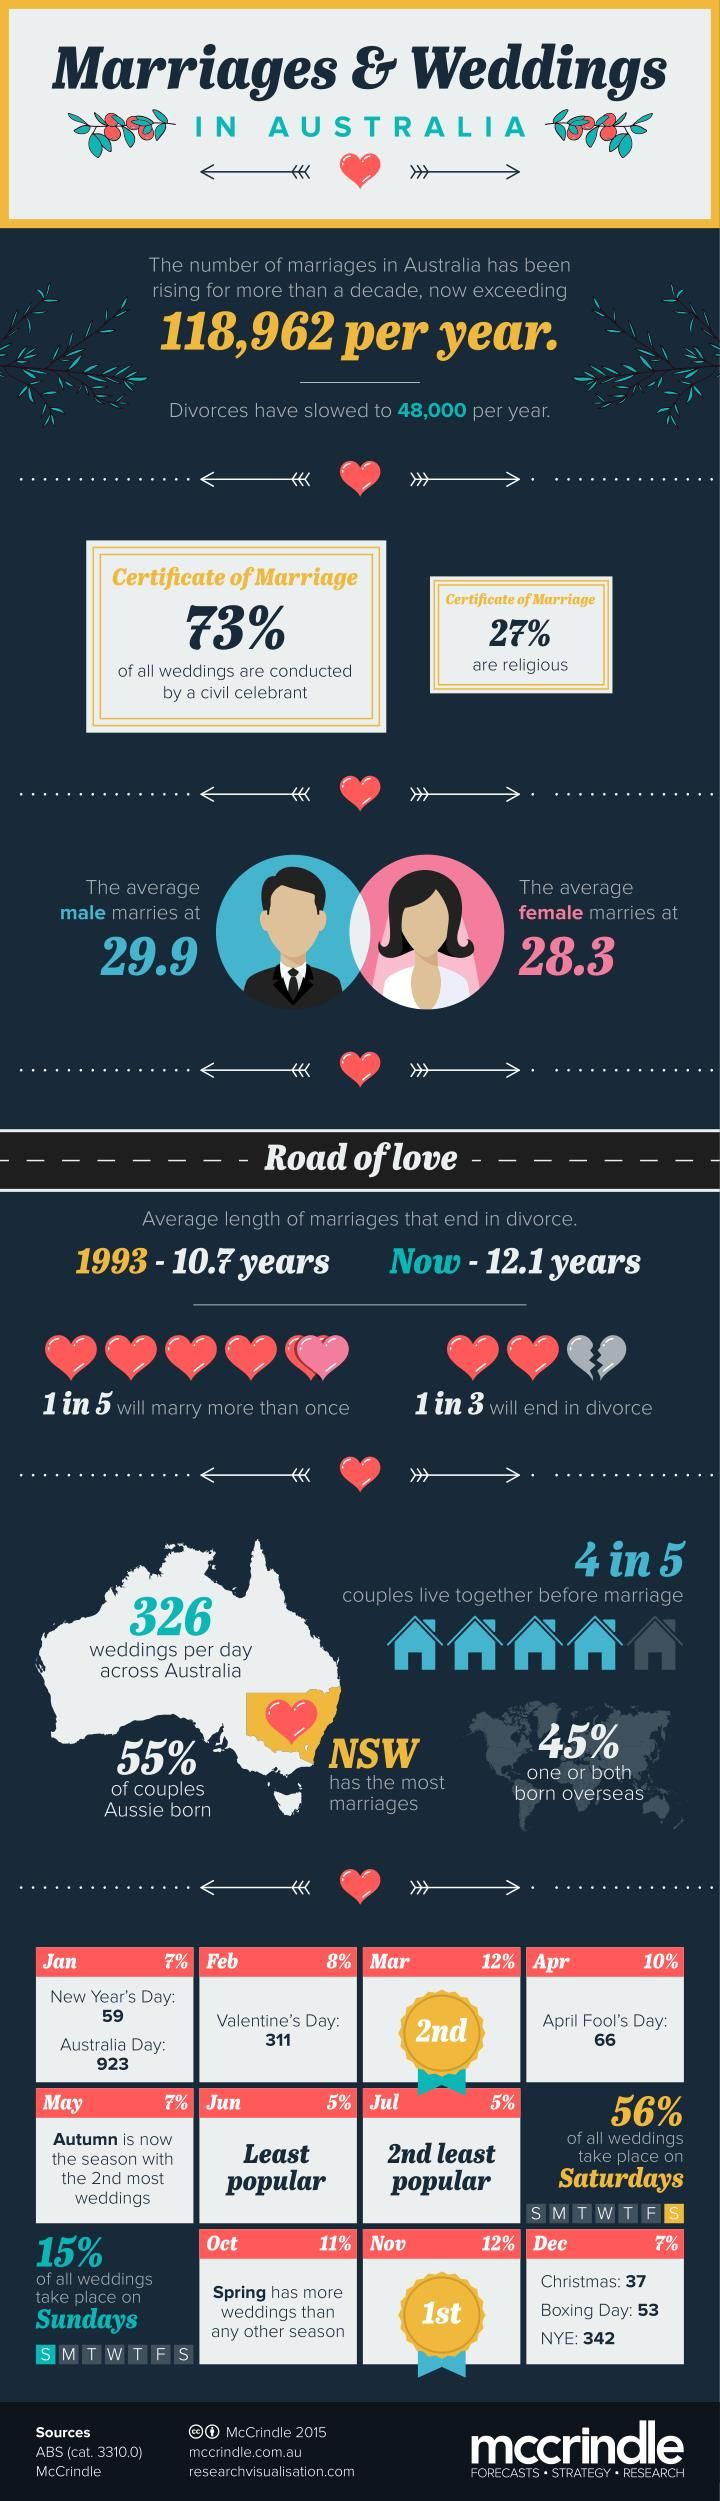 Analysis of the latest ABS marriages data (ABS cat 3310.0) shows that wedding numbers are on the decrease and that Aussies are choosing to get married younger. And with the 'in-between' seasons (Autumn and Spring) deemed the most popular times of year to tie the knot, wedding venues in Australia should brace for a few busy days over the coming months. \n\nMARRIAGES ON THE DECLINE? \nWhile the number of marriages taking place each year in Australia has been rising for more than a decade…